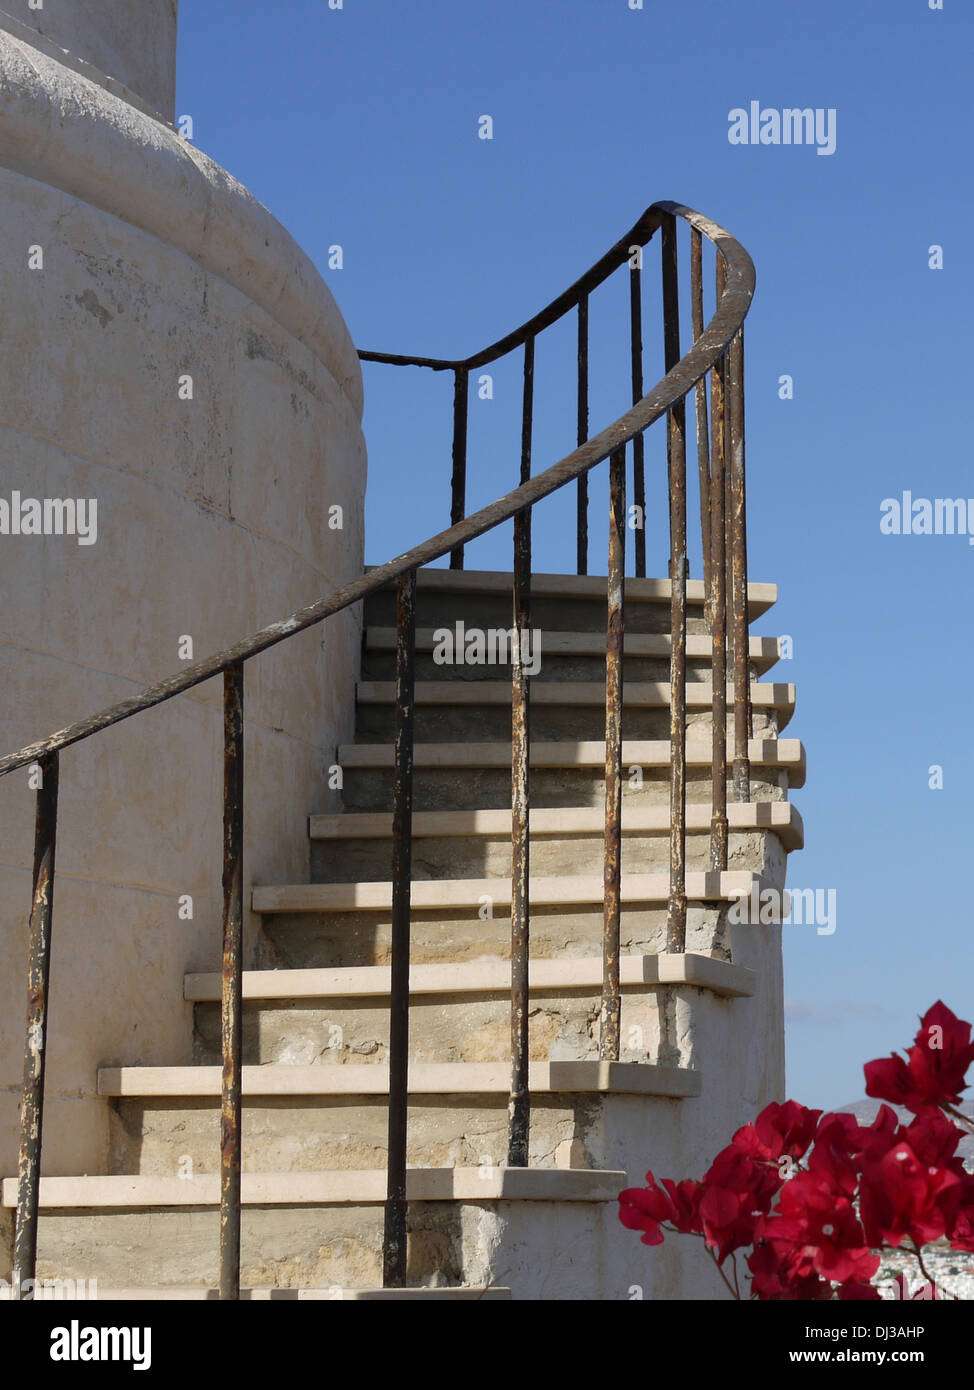 Steps and handrail at base of lighthouse. - Stock Image